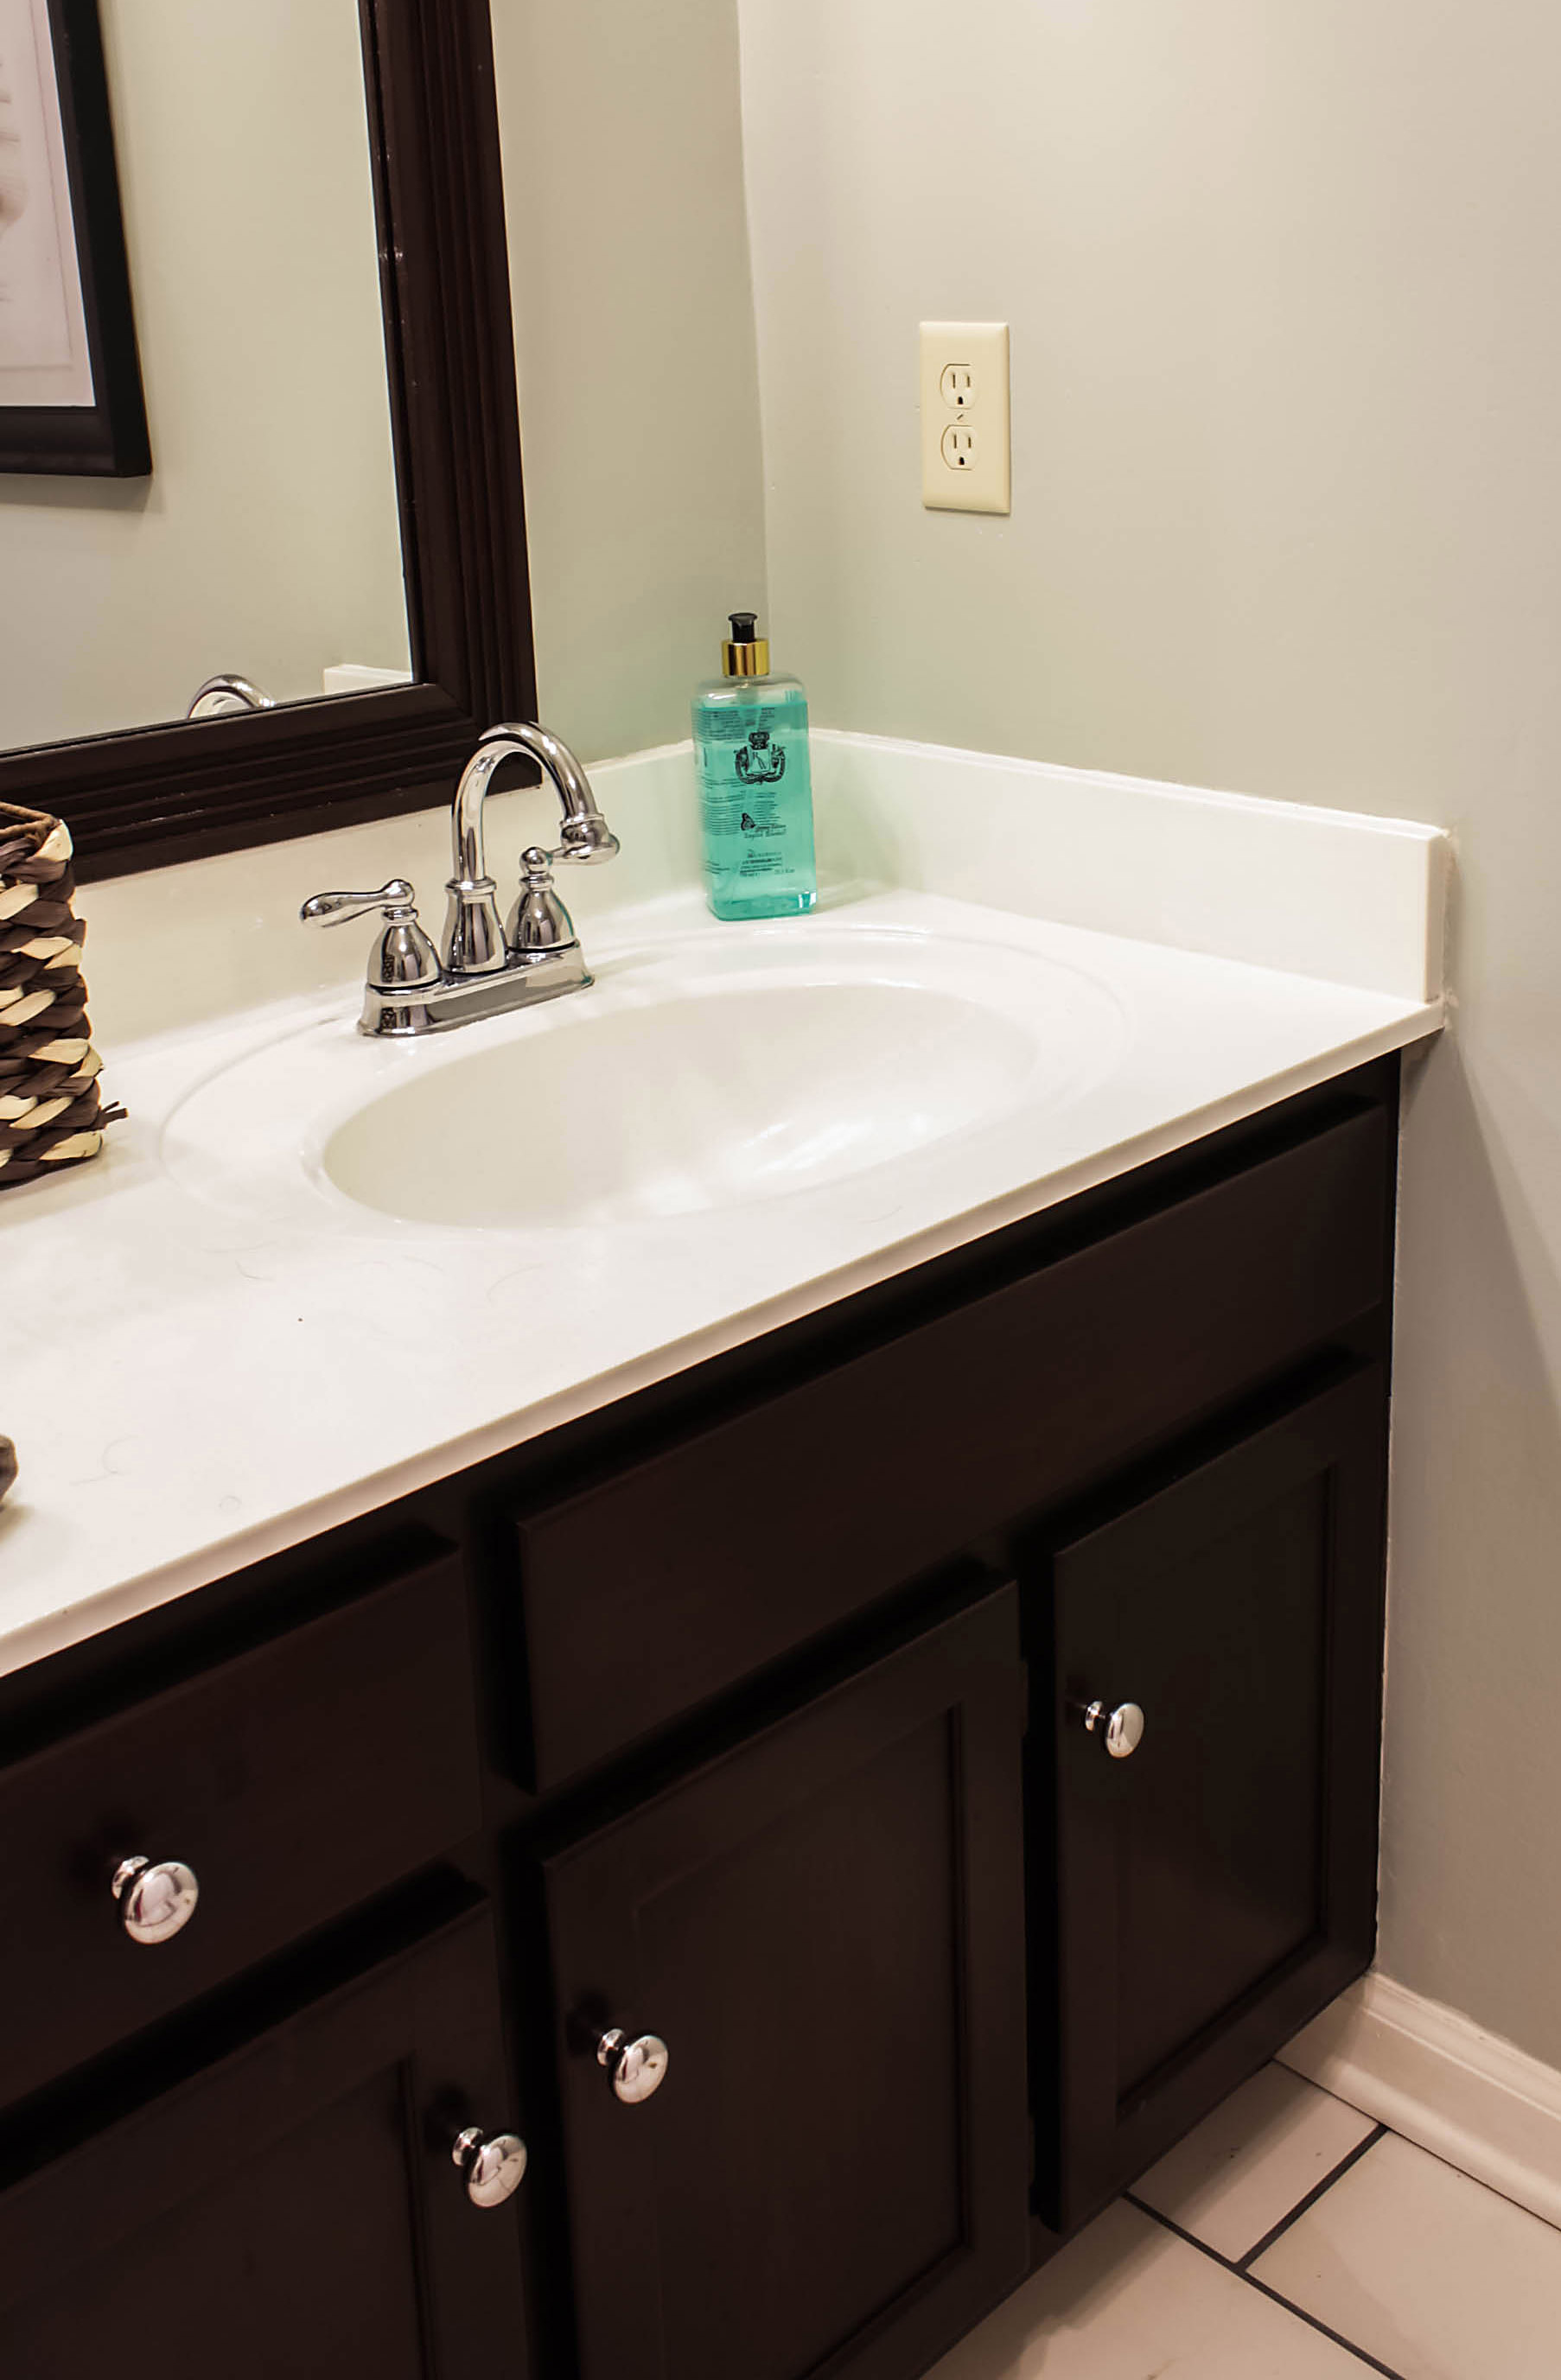 ideas size kitchen covers tiny countertops of cabinet rental full pinterest awesome college apartment renters for decorating cover temporary countertop